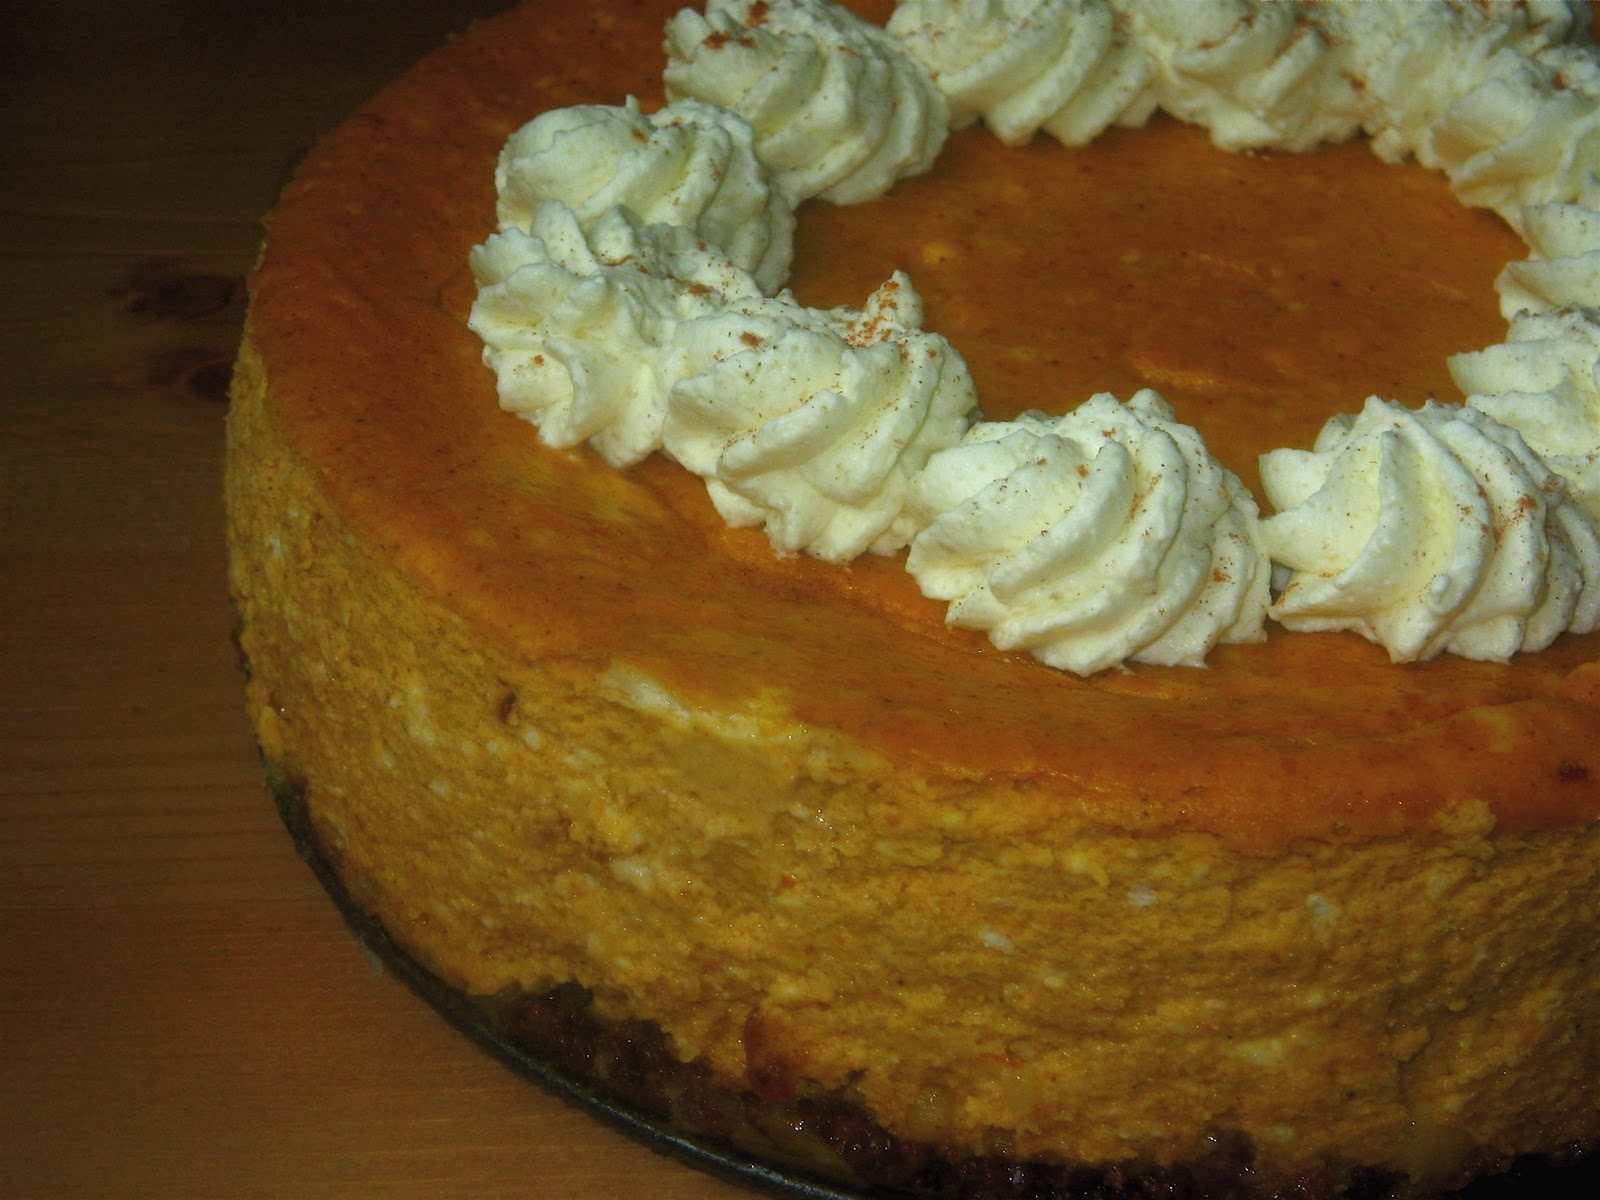 Full Life: Pumpkin Cheesecake: The New Pumpkin Pie